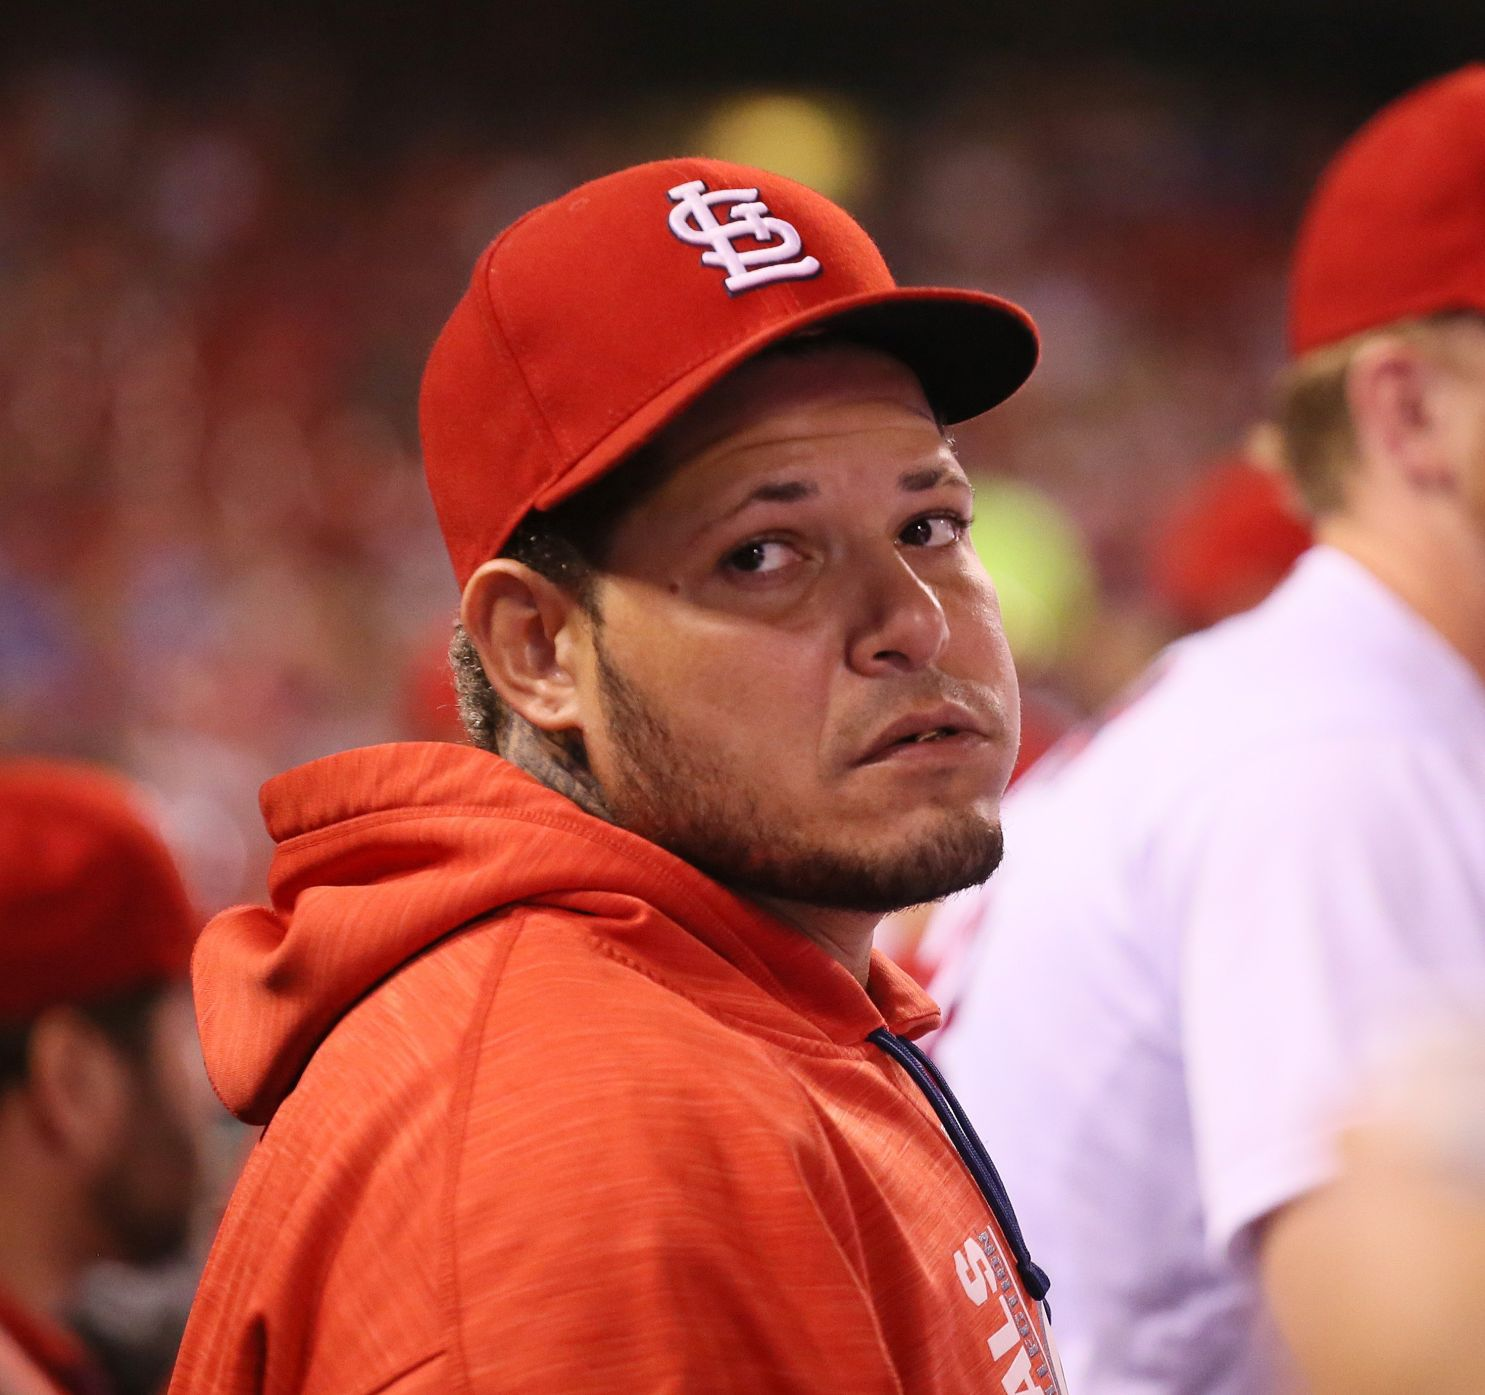 Yadier Molina wants to play again before the season is over